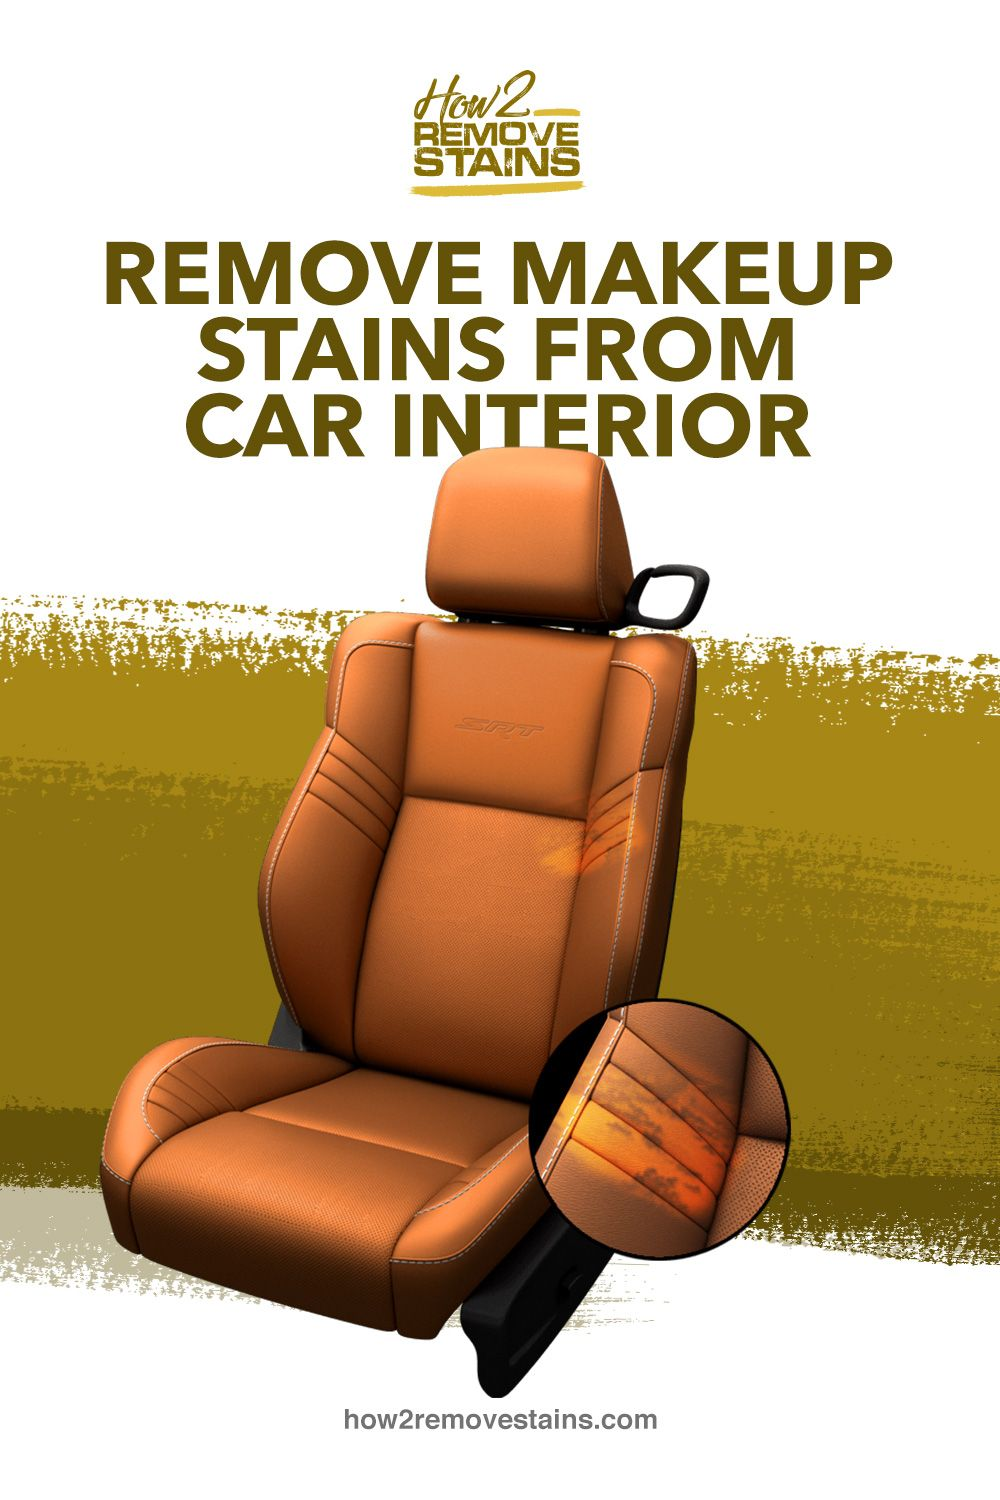 How to remove makeup stains from car interior in 2020